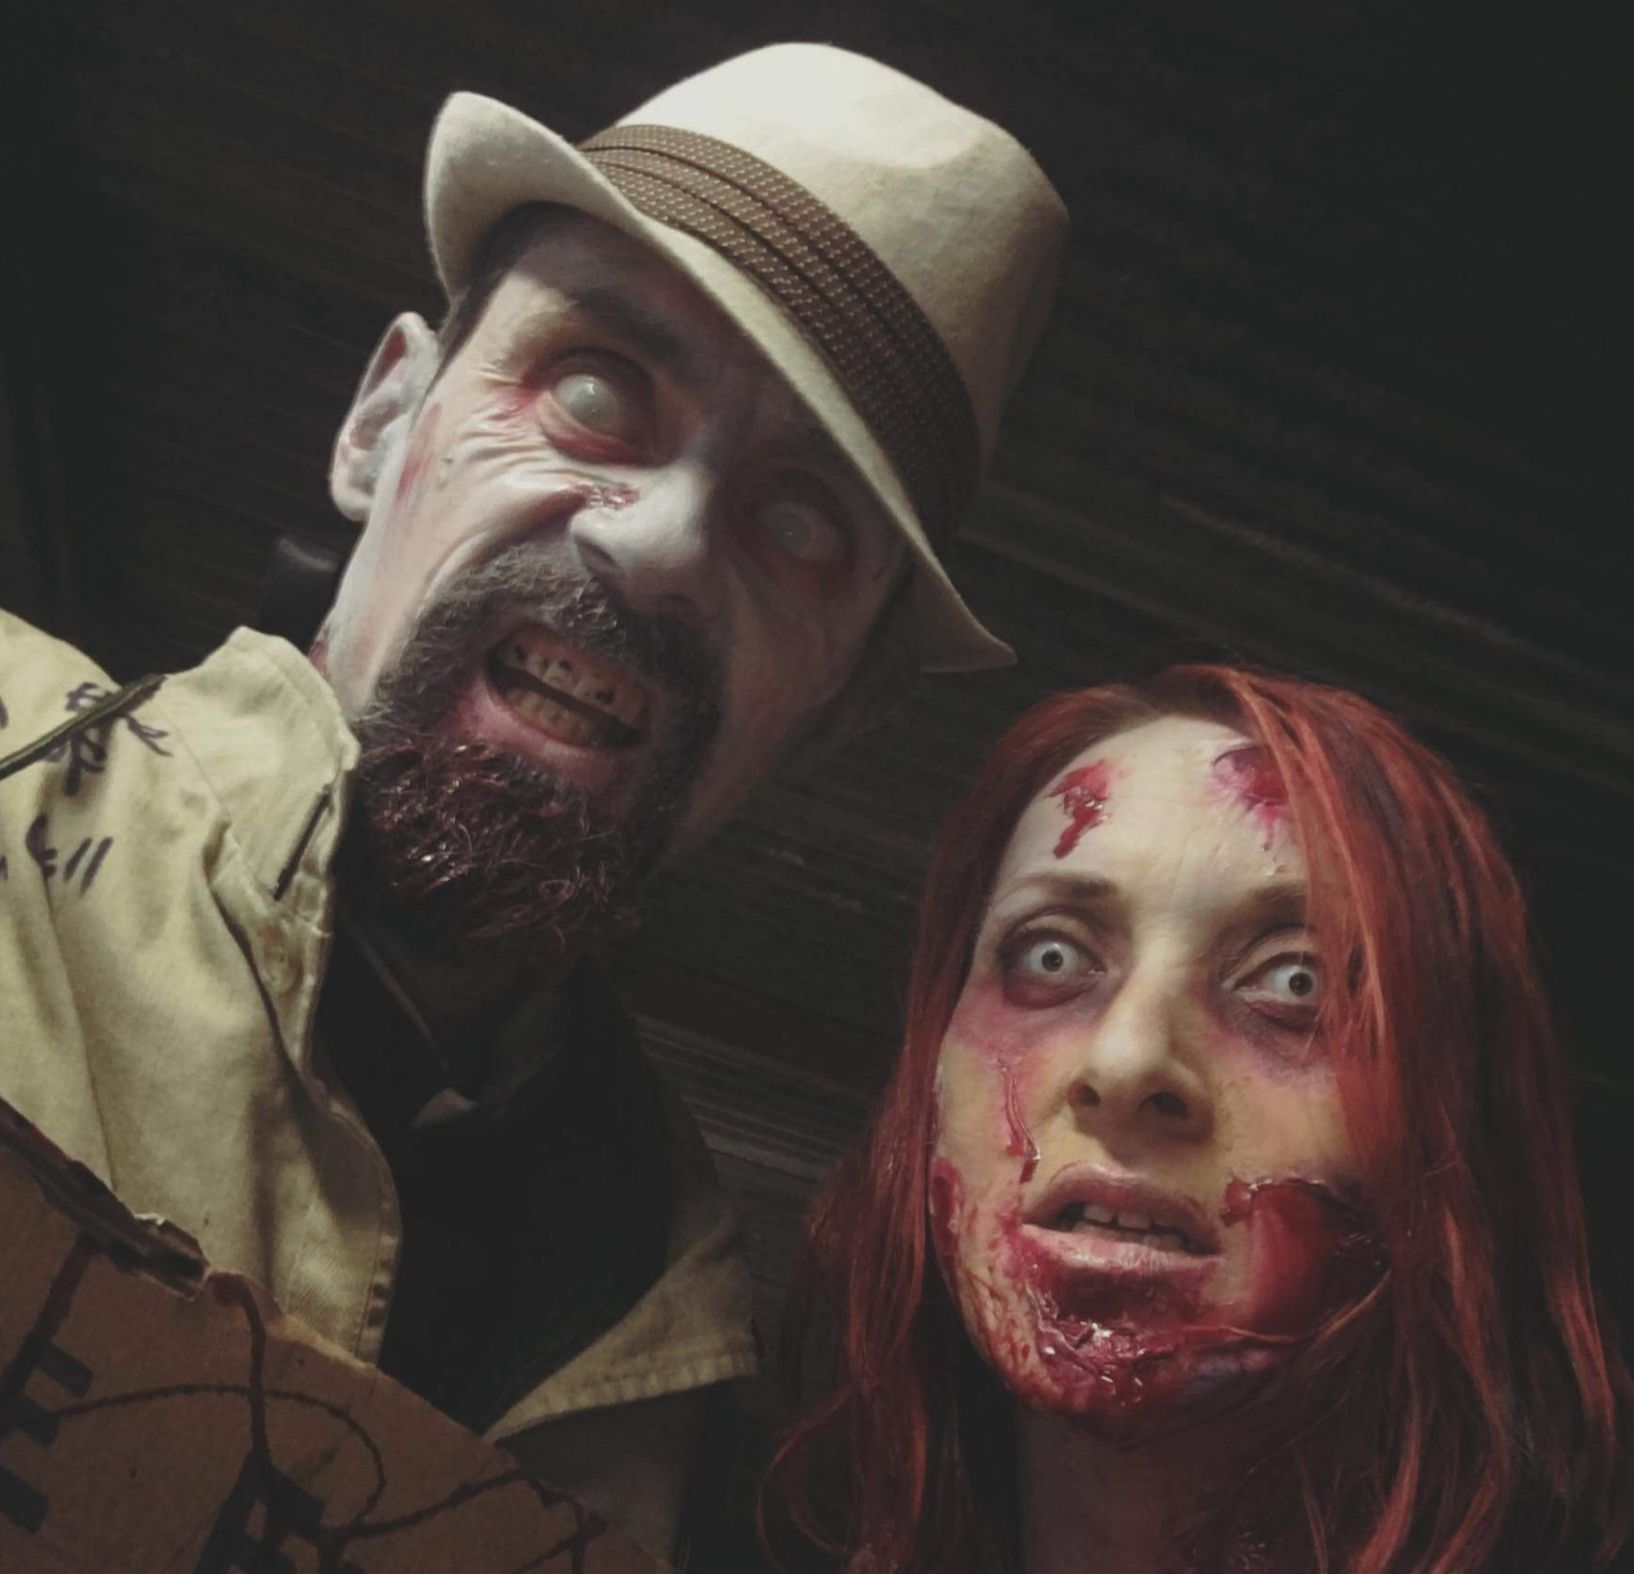 2 of our amazing zombies